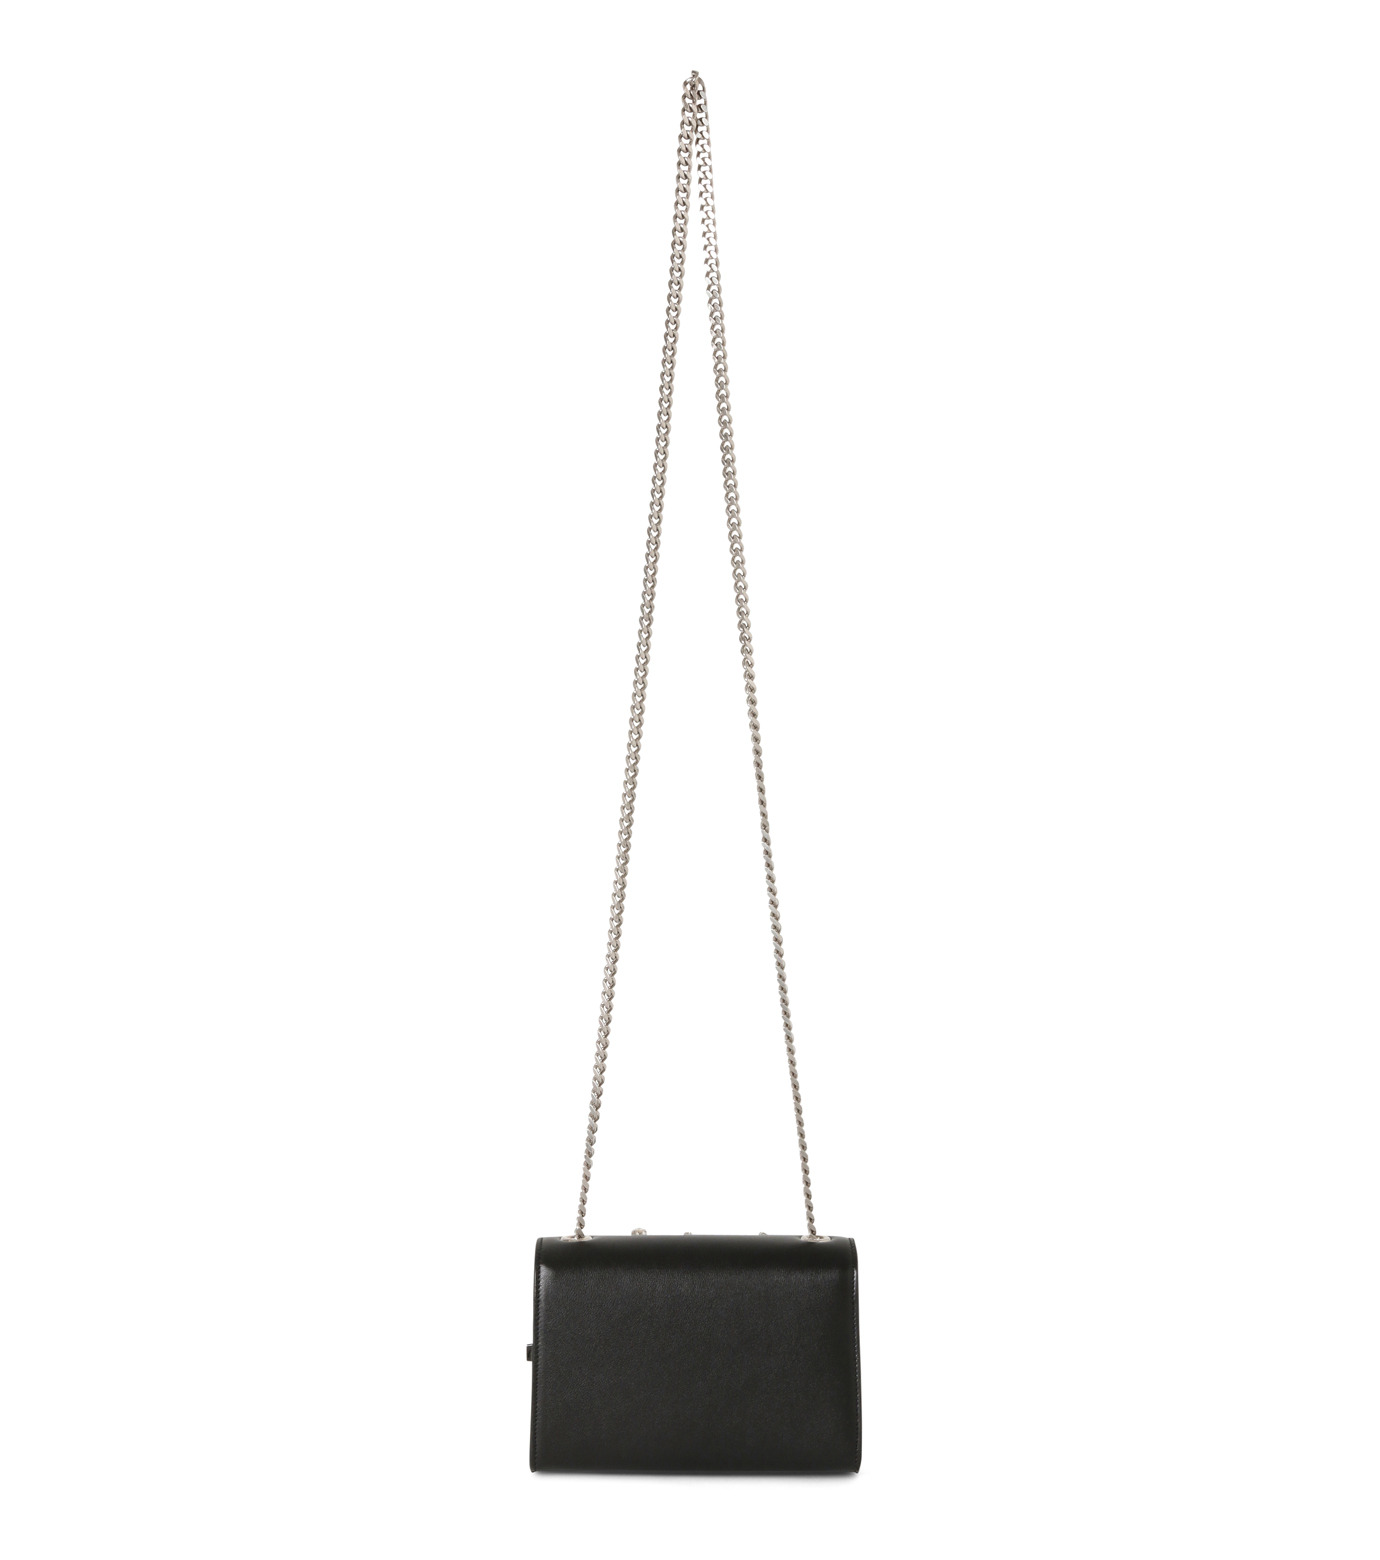 SAINT LAURENT(サンローラン)のSmall Kate Chain Bag w/Charms-BLACK(ショルダーバッグ/shoulder bag)-363832-CW7DX-13 拡大詳細画像3